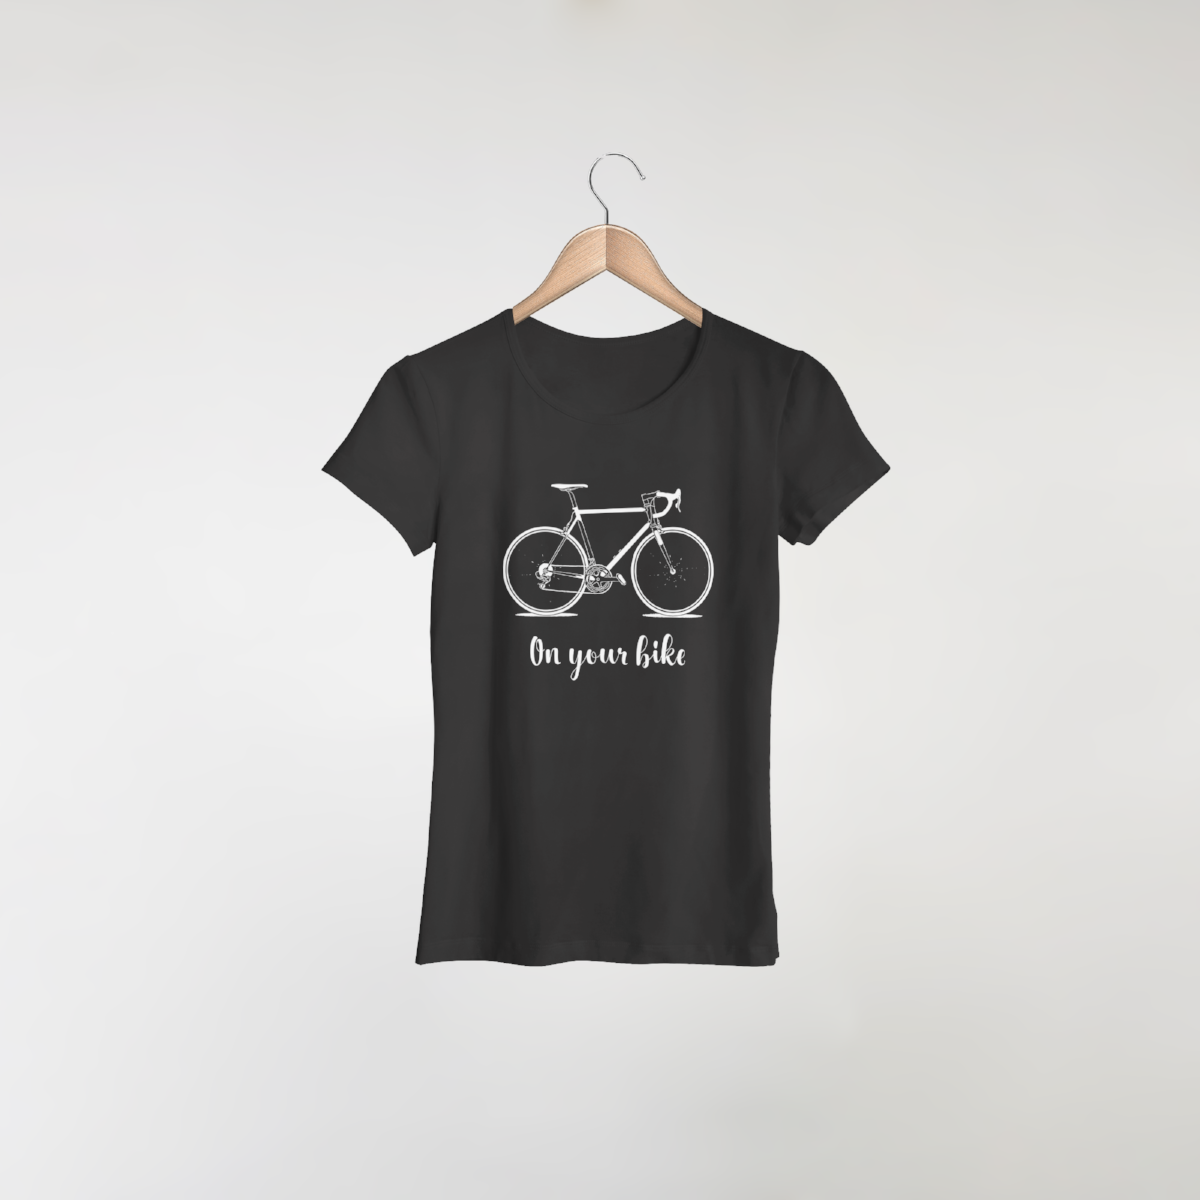 Bike design on women's black t-shirt